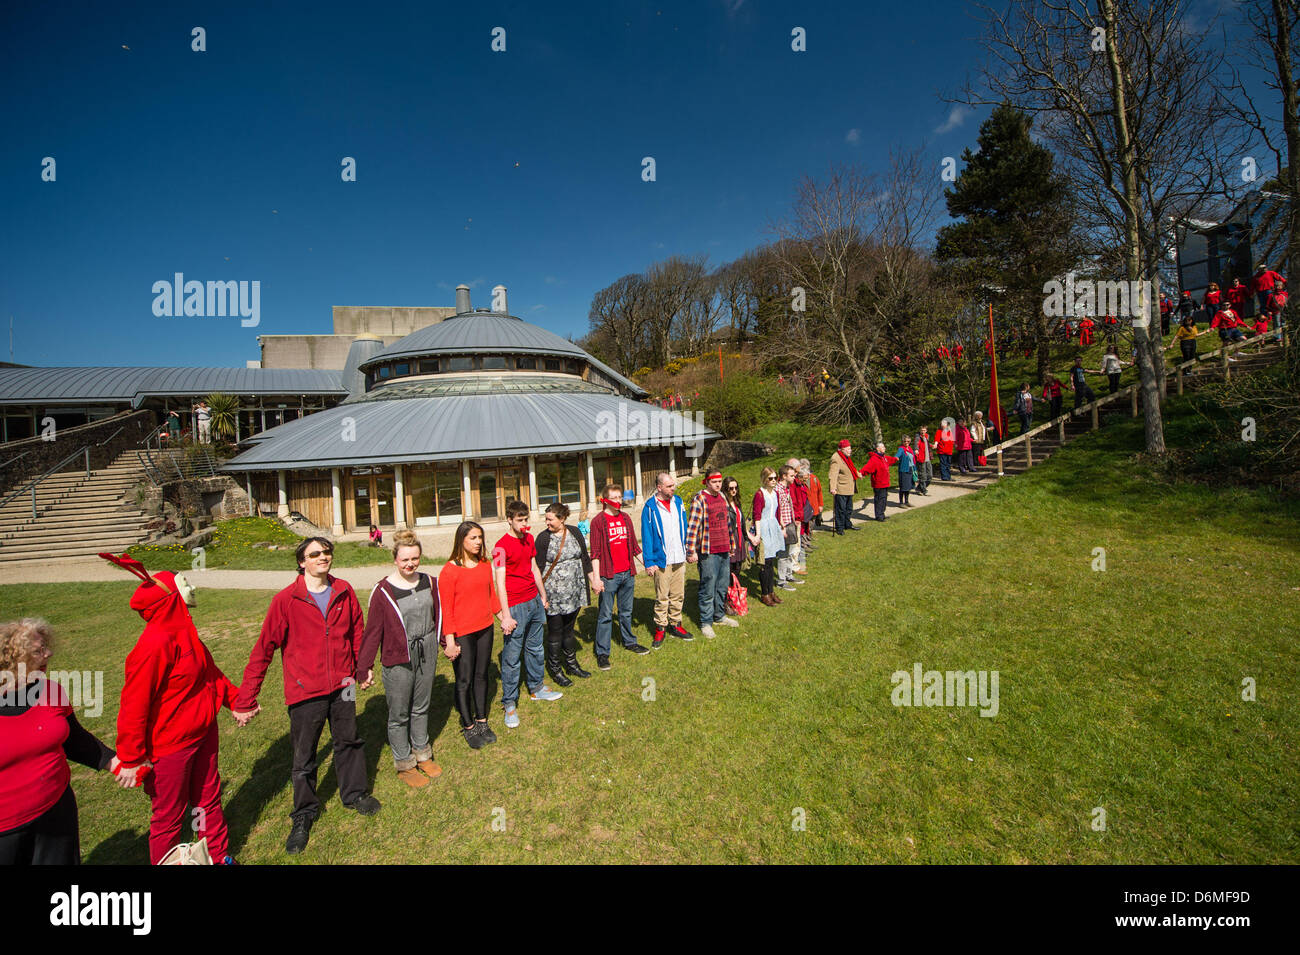 Aberystwyth Wales UK. 20th April, 2013.    Over 600 people gathered to encircle Aberystwyth Arts Centre in a silent - Stock Image